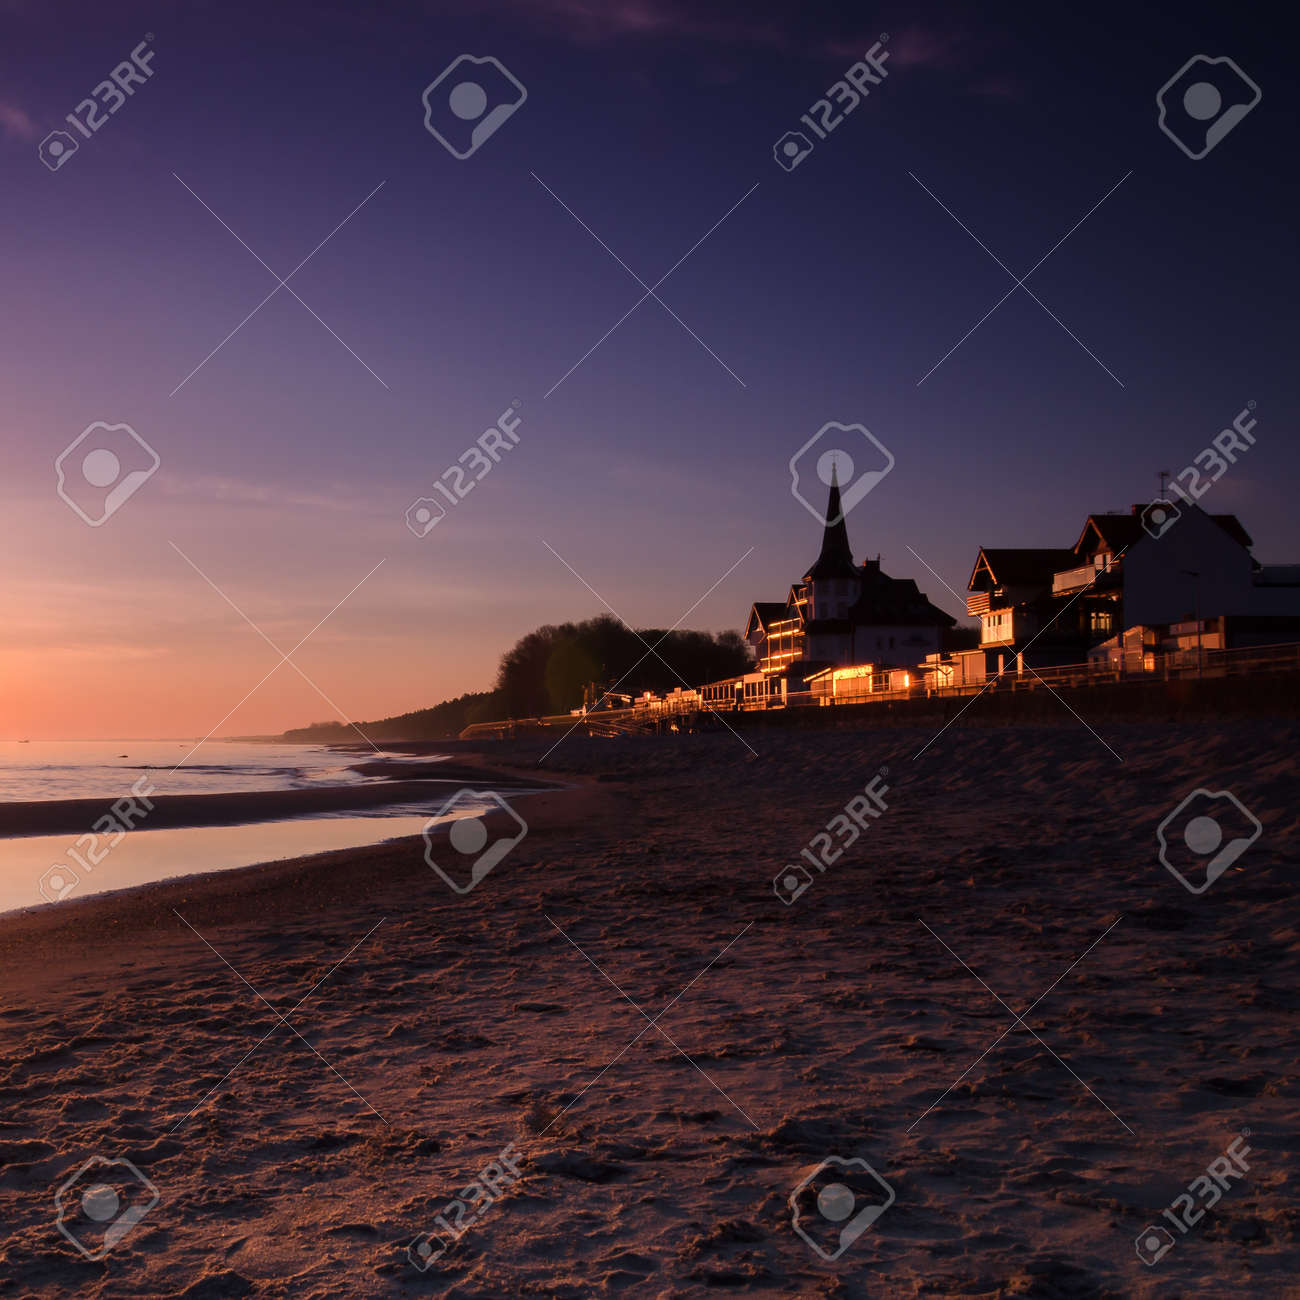 DAWN AT THE SEASIDE - Sunrise, beach and resorts in the countryside - 169541168